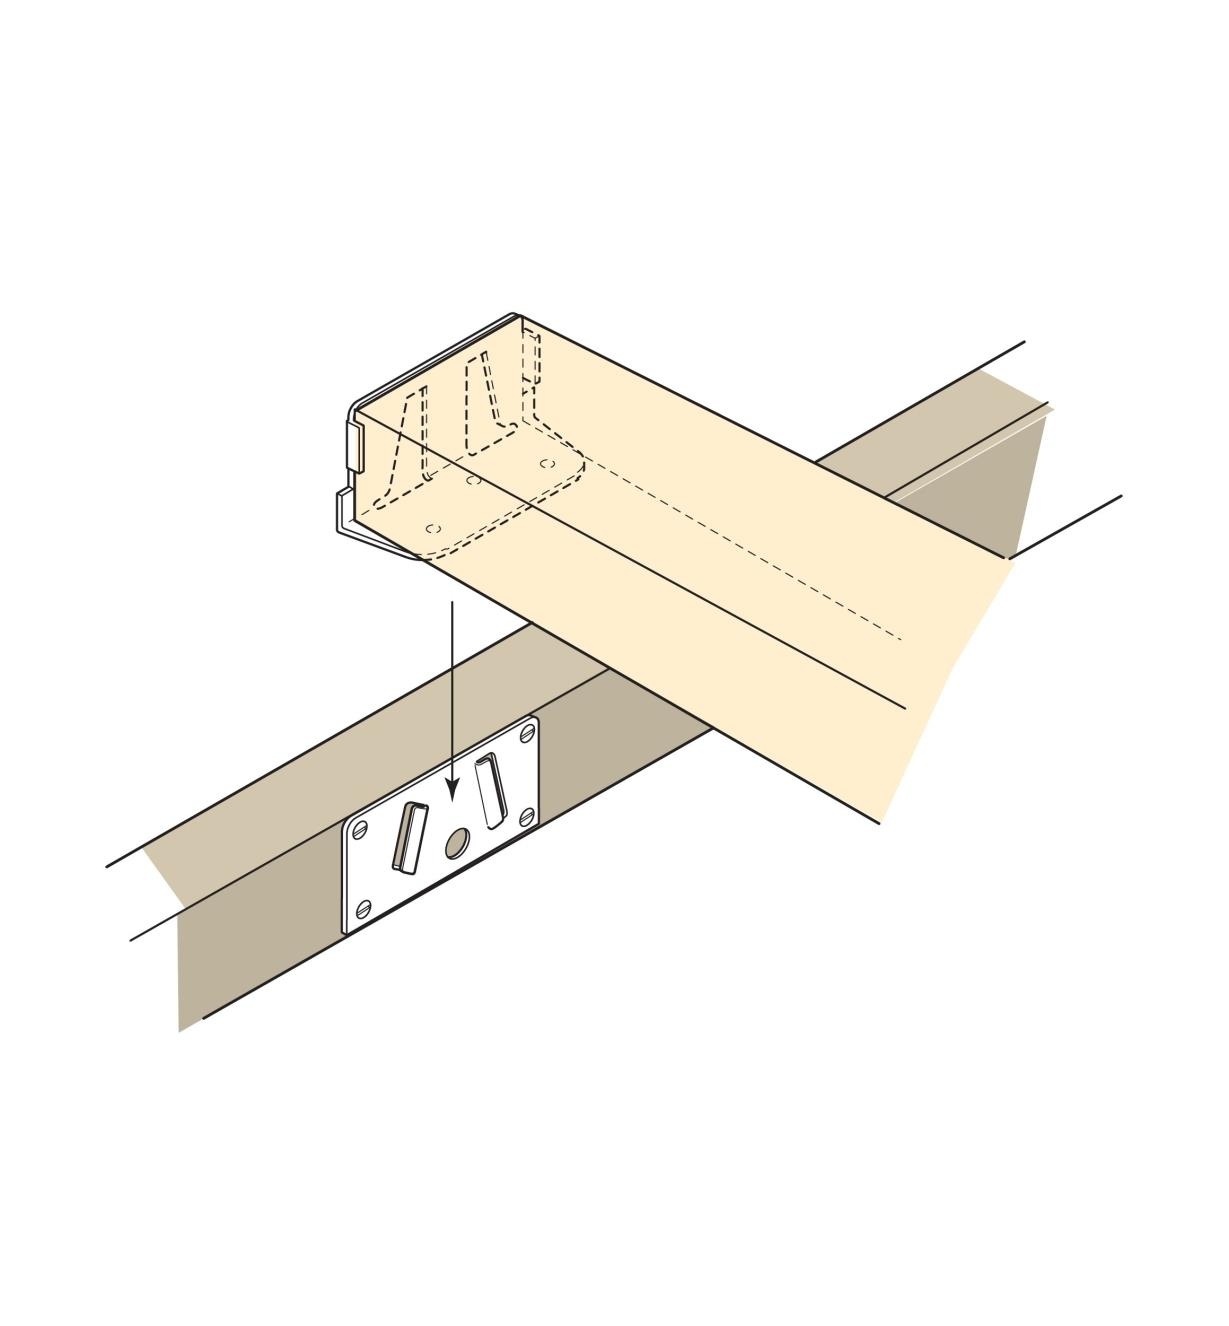 Illustration of Right-Angle Joiners joining a central beam to a side rail